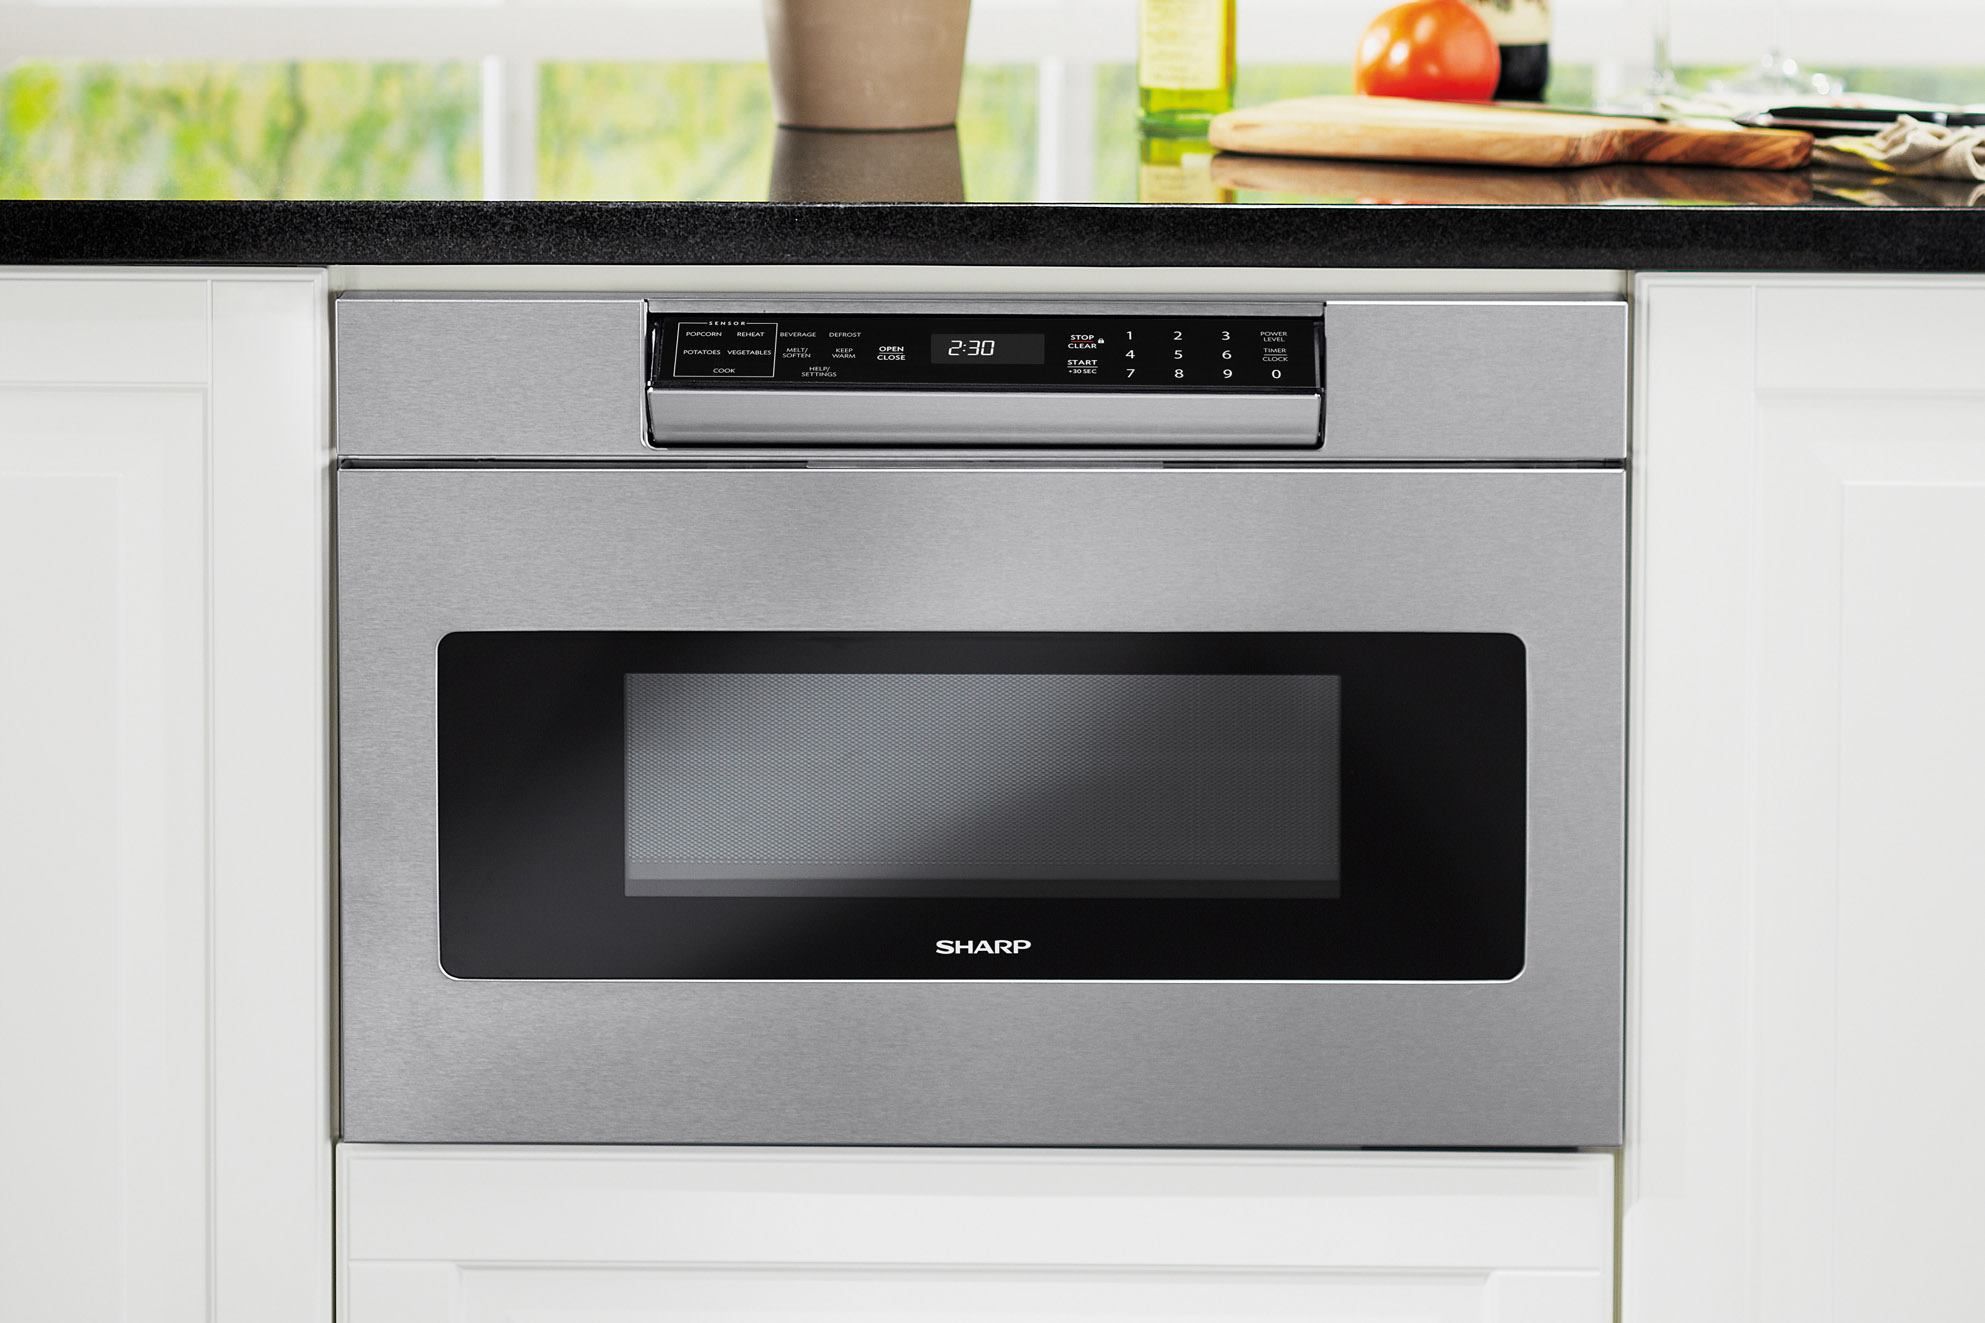 Sharp Microwave Drawer Oven Jlc Online